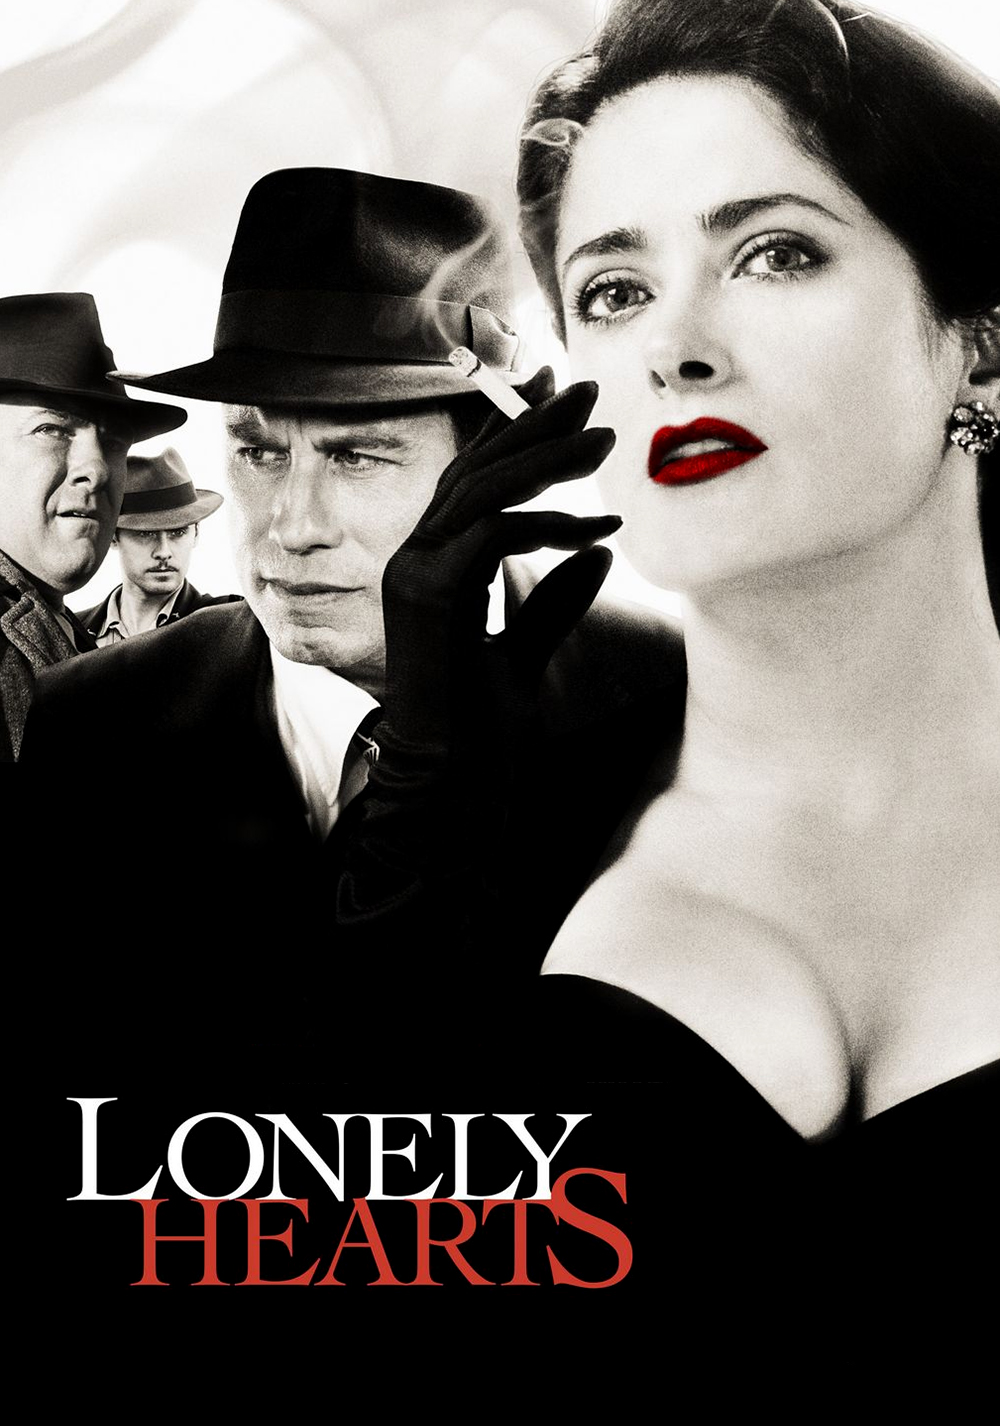 LONELY HEARTS (2006) MOVIE TAMIL DUBBED HD